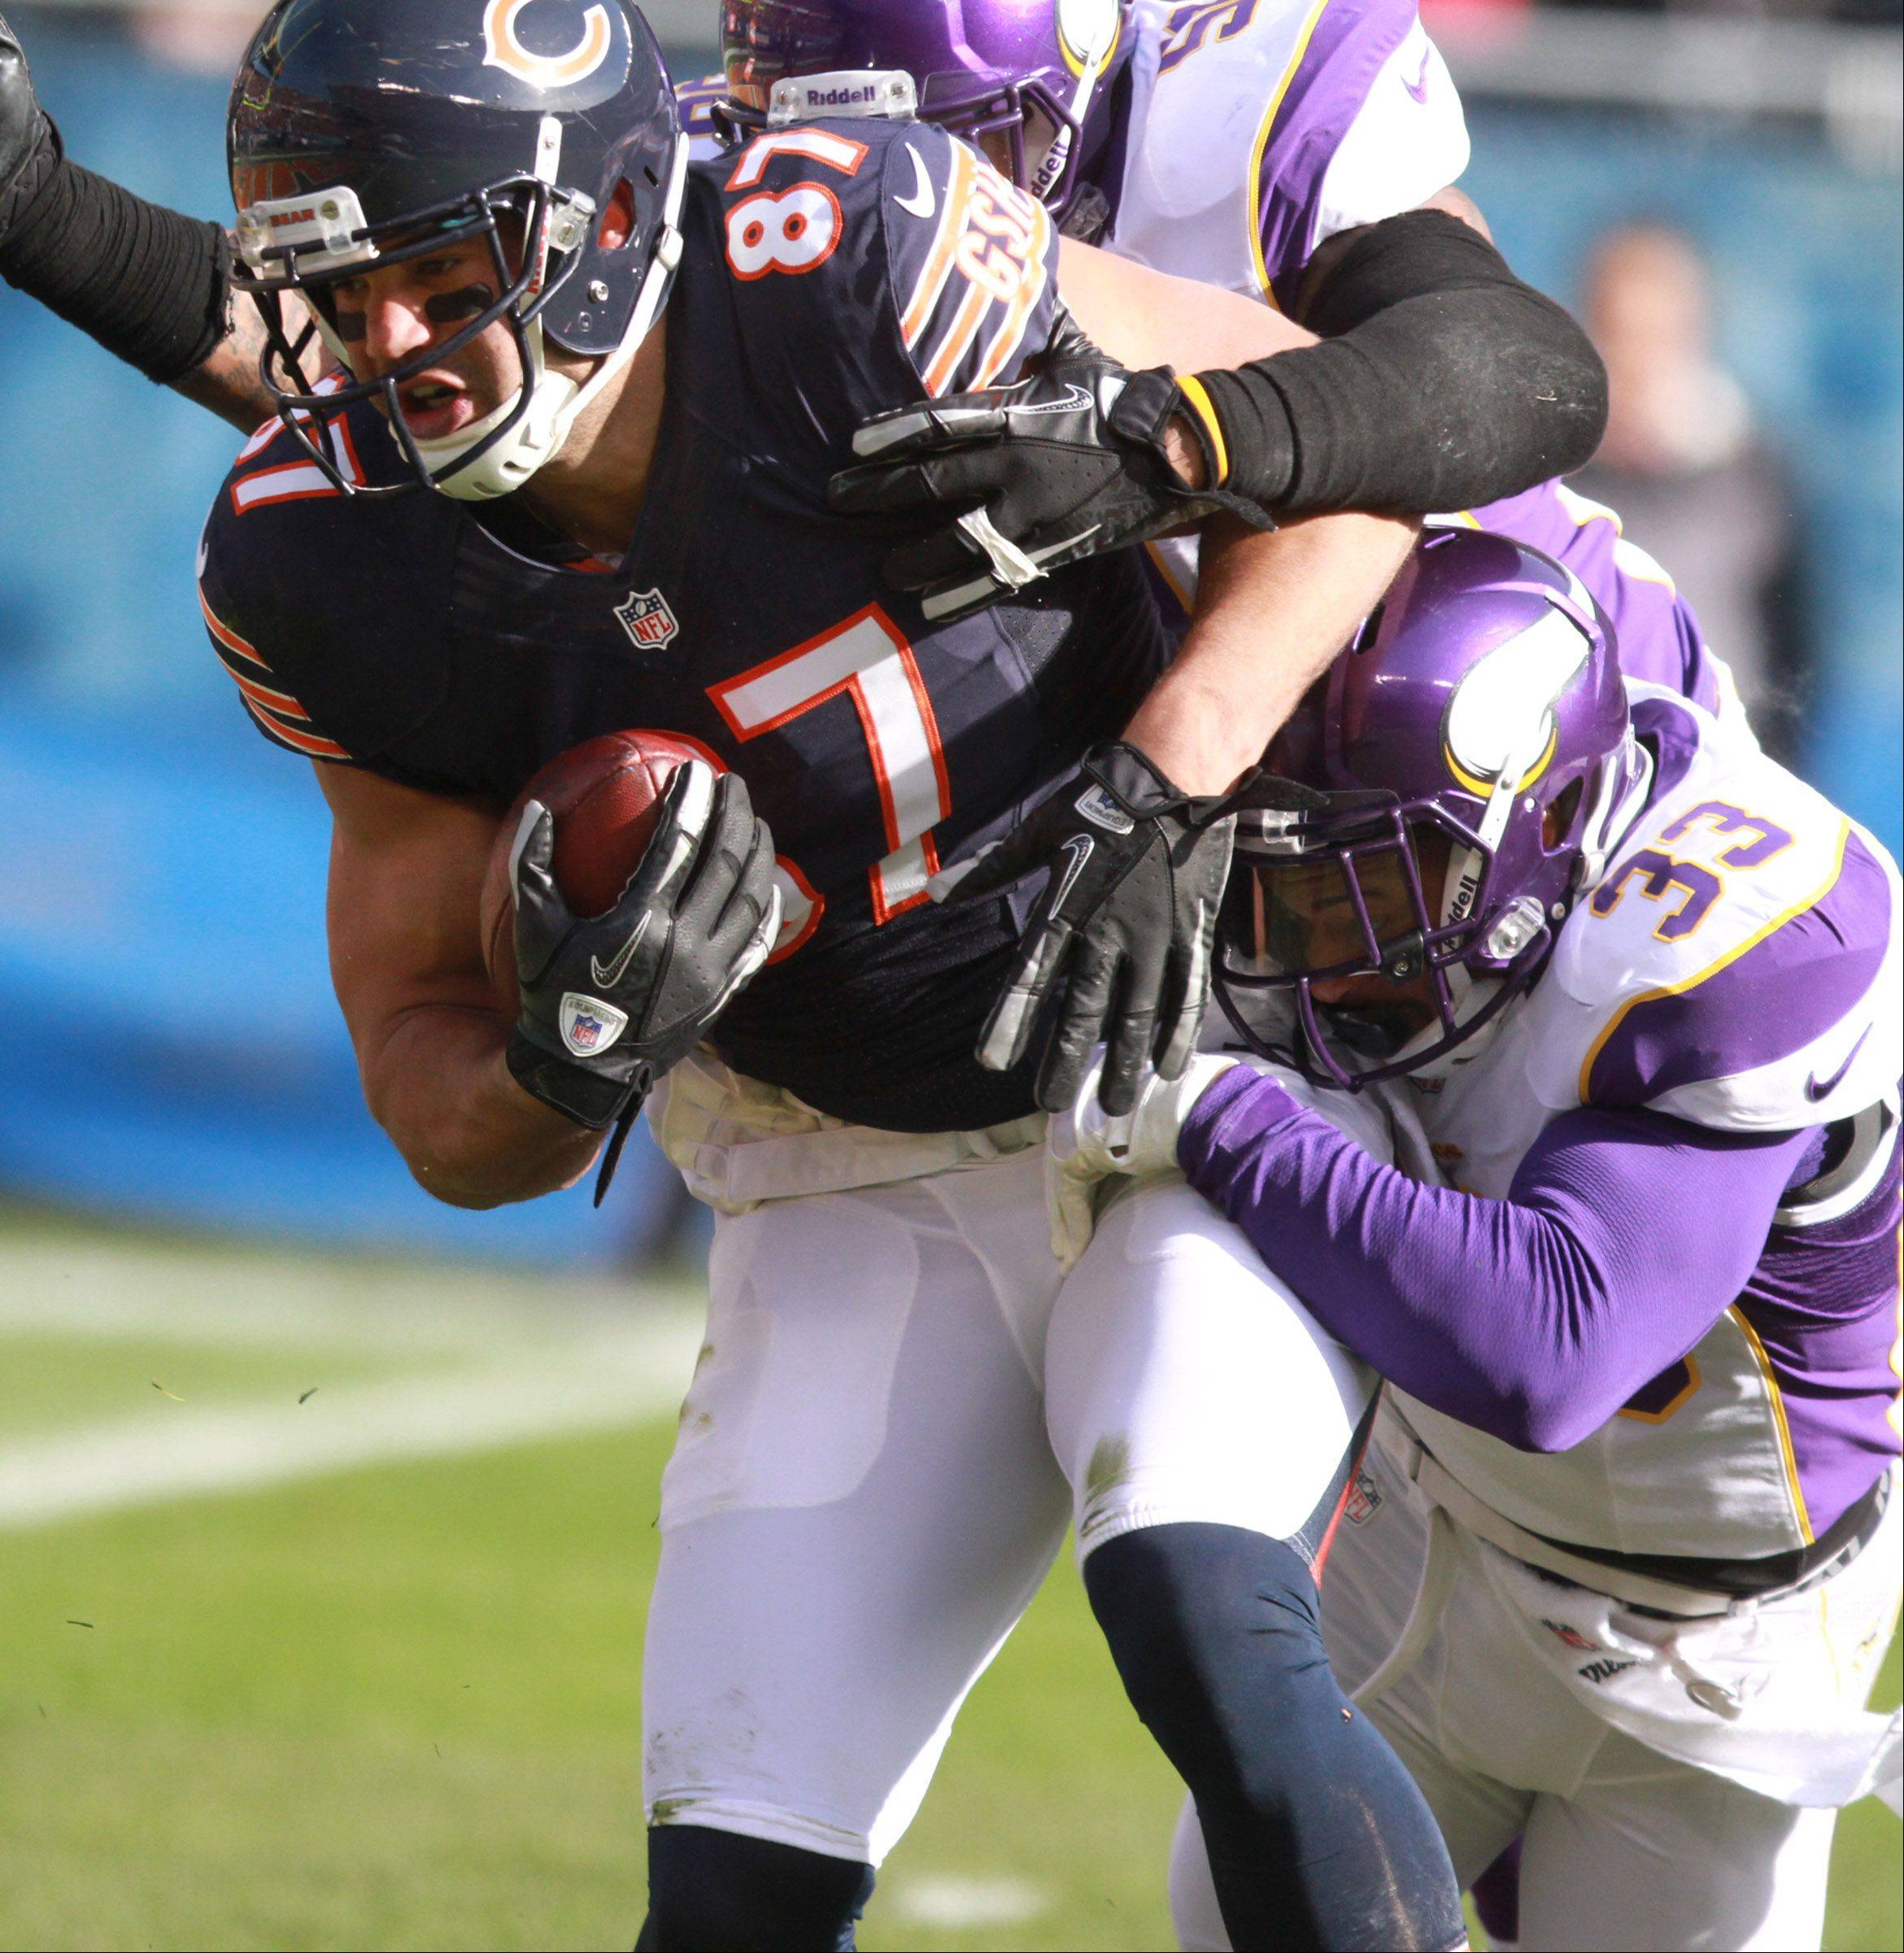 Chicago Bears tight end Kellen Davis is dragged down by Minnesota Vikings strong safety Jamarca Sanford at Soldier Field Sunday.